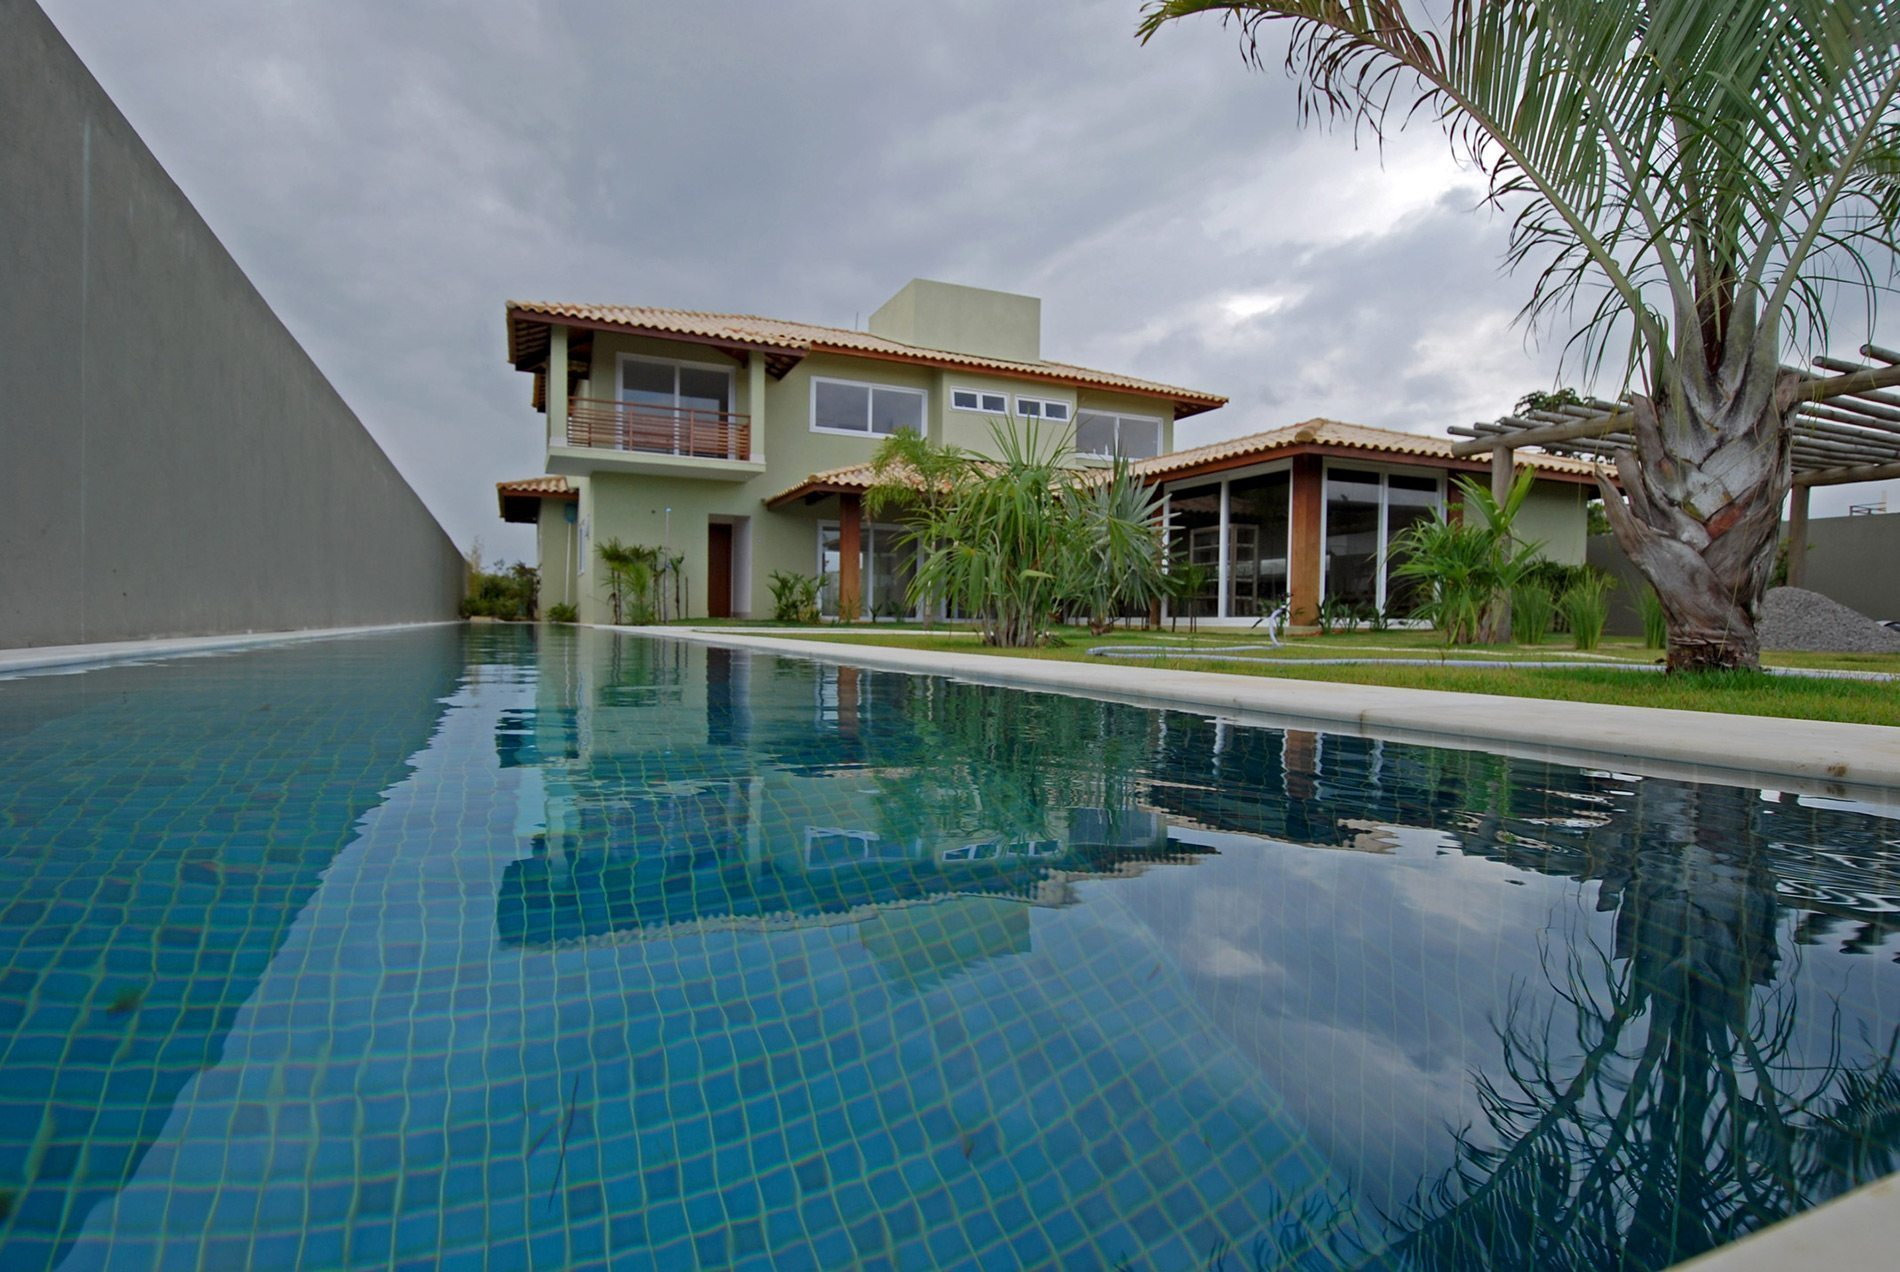 Stunning house with pool for sale in busca vida hansen for Casa piscina